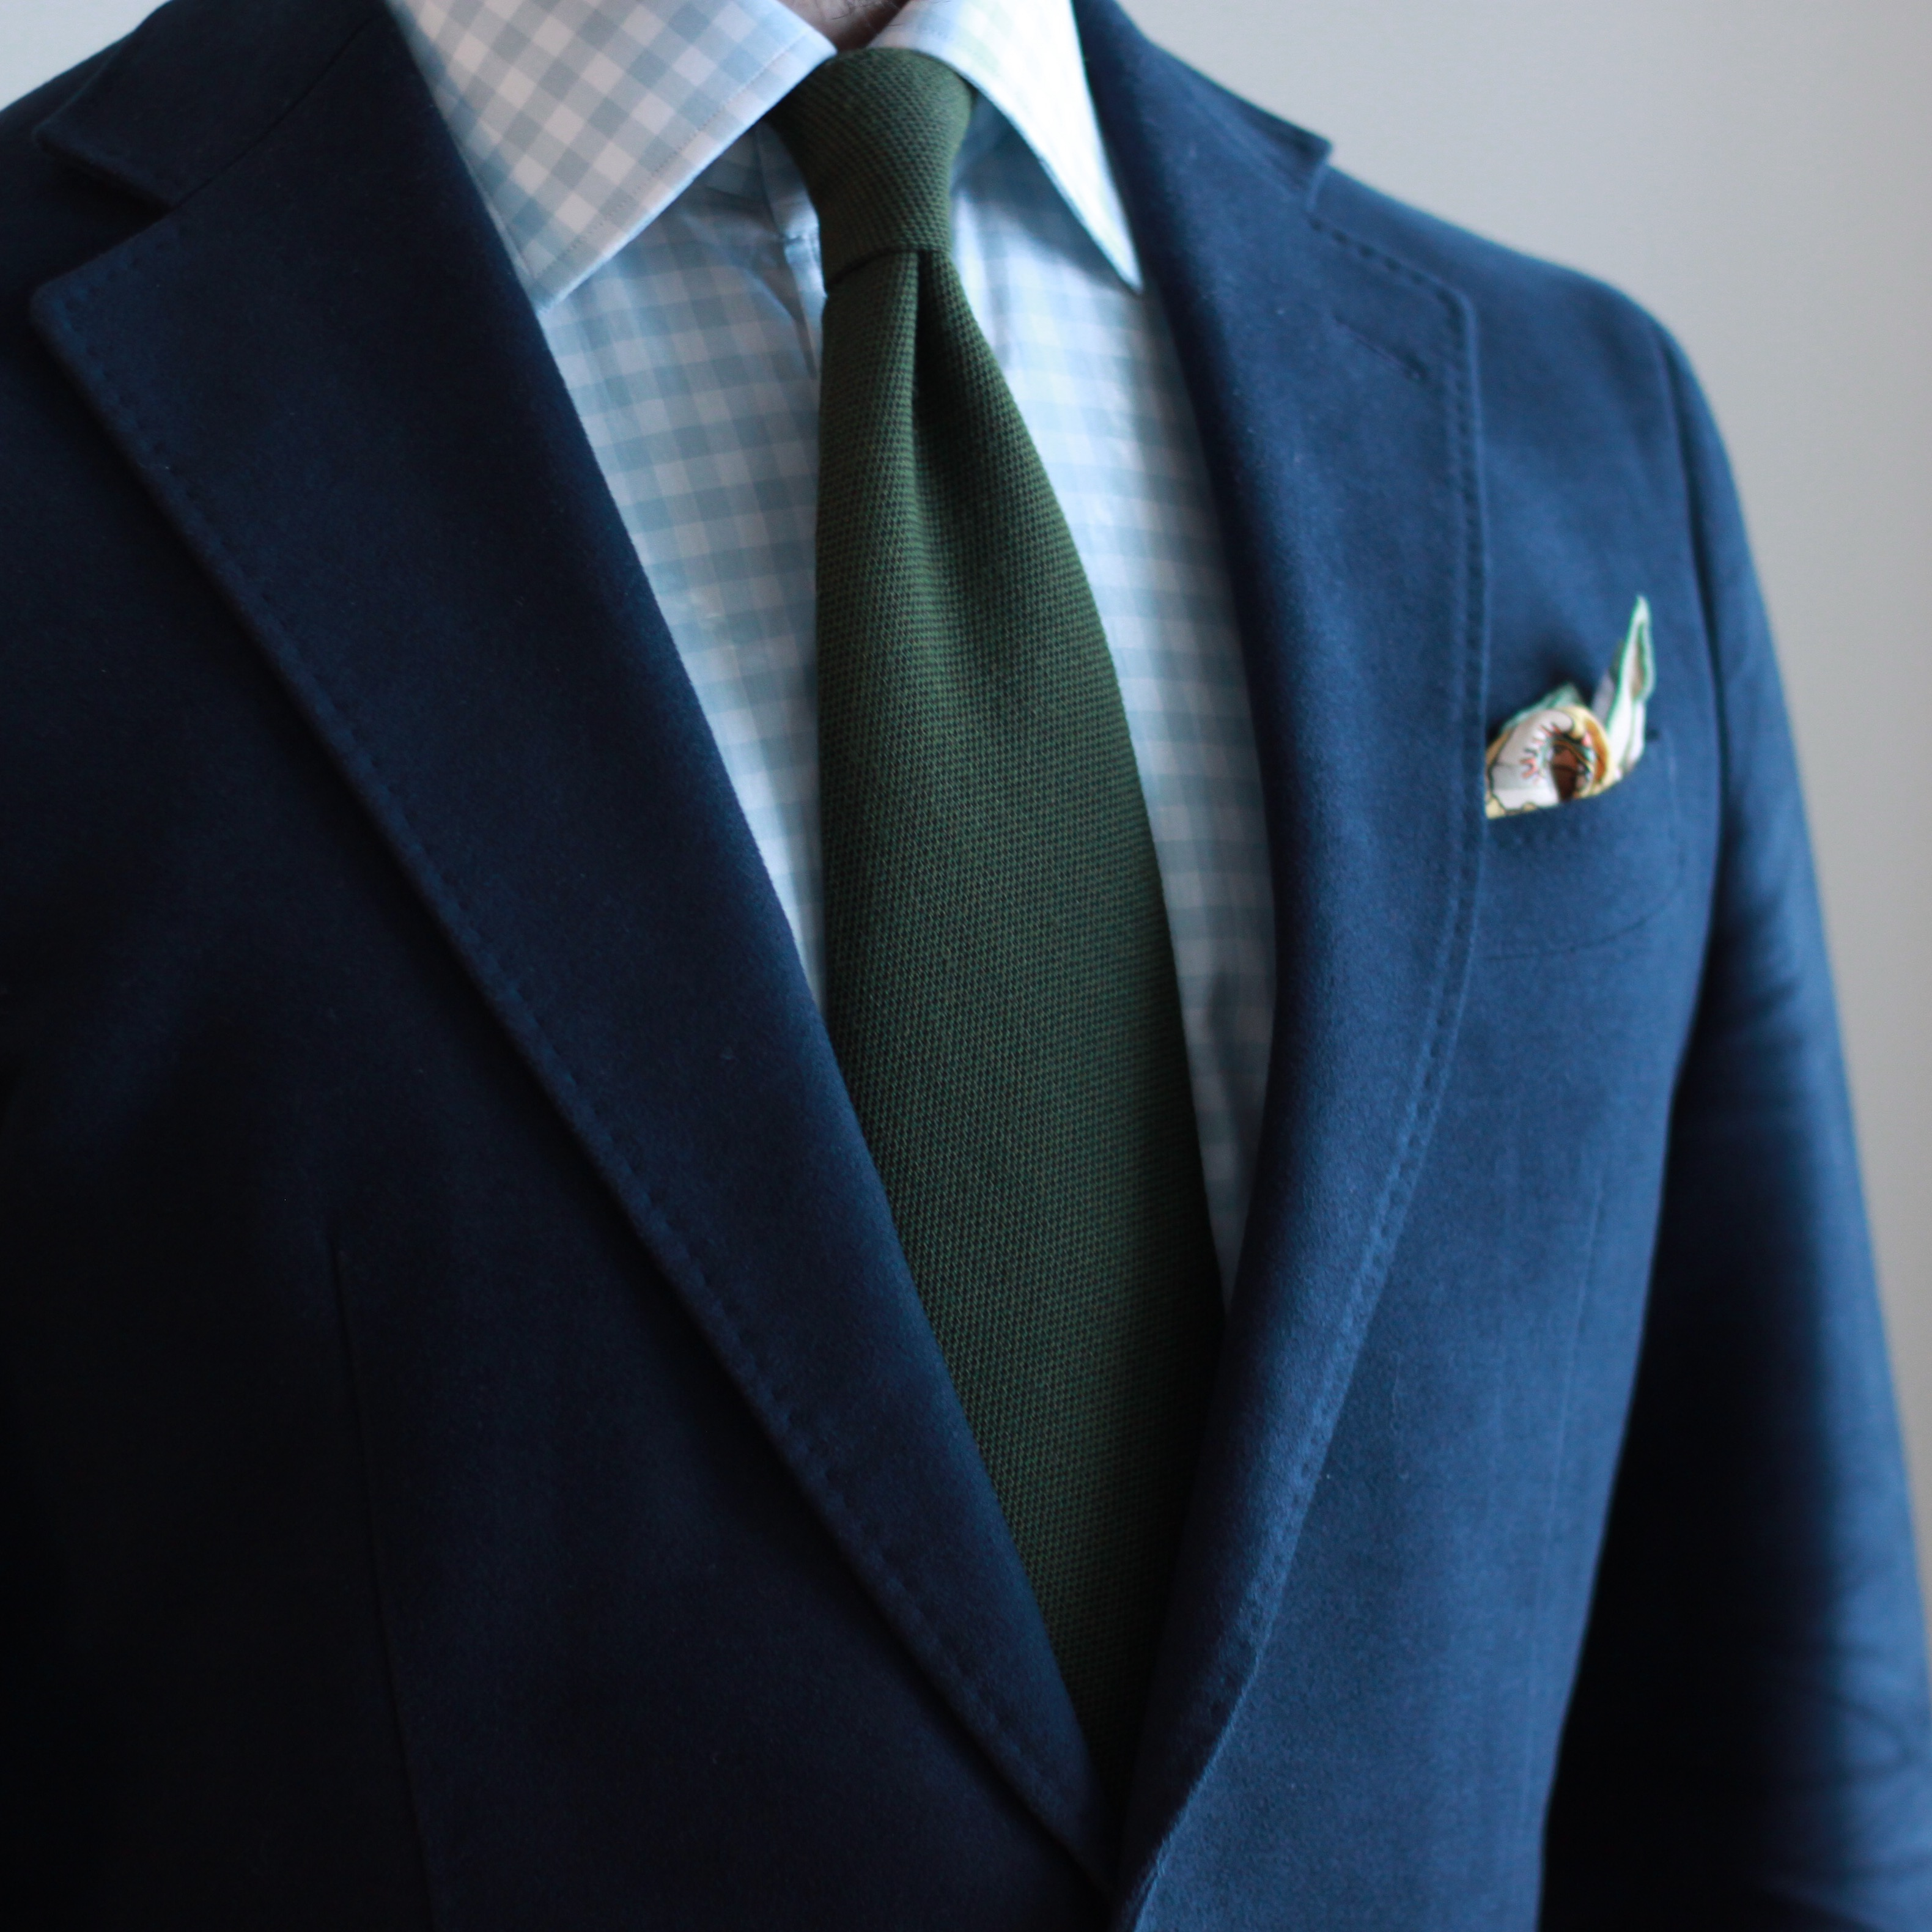 gingham shirt, moleskin, green tie, odd jacket, sport coat, pocket square, kent wang, spier mackay